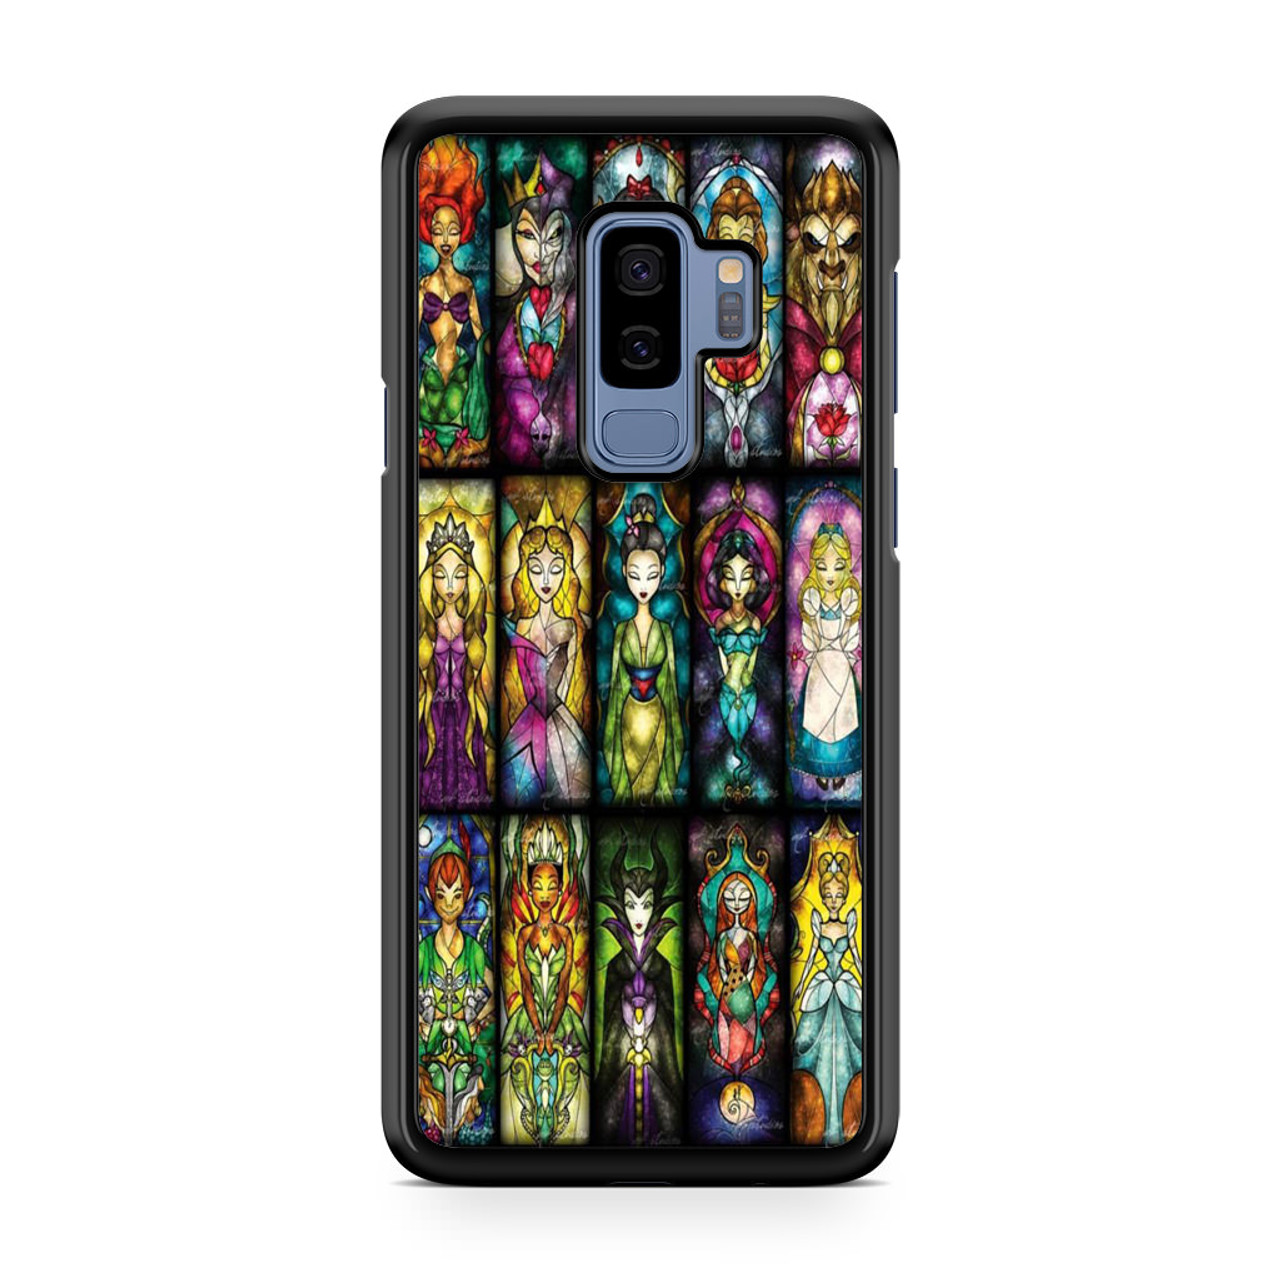 lowest price 1038e 4110e All Princess disney stained glass Samsung Galaxy S9 Plus Case